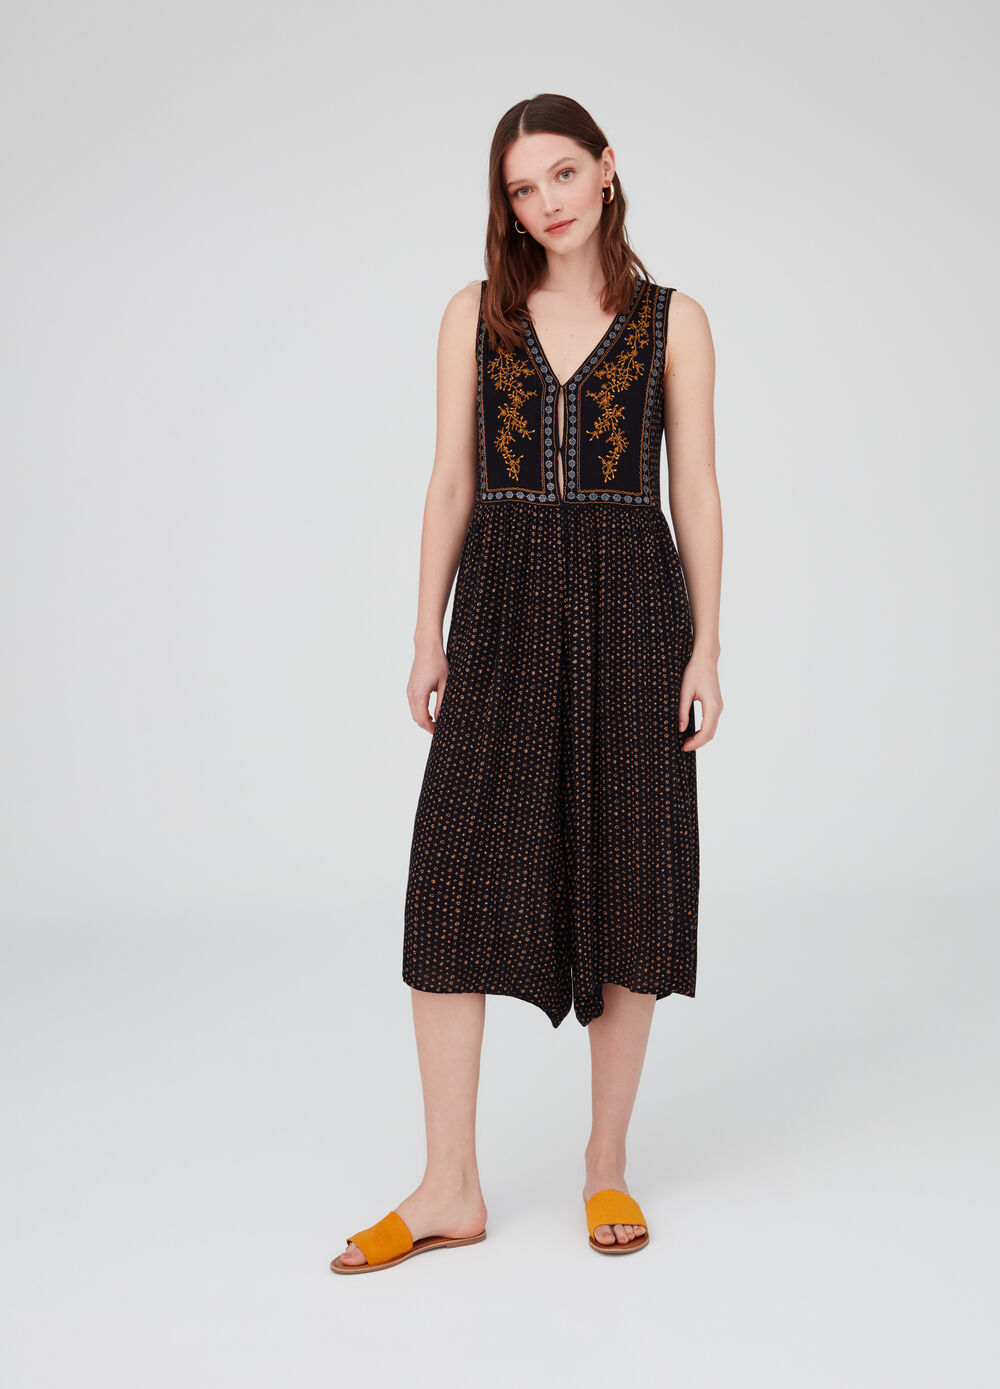 Sleeveless dress with embroidery and pattern